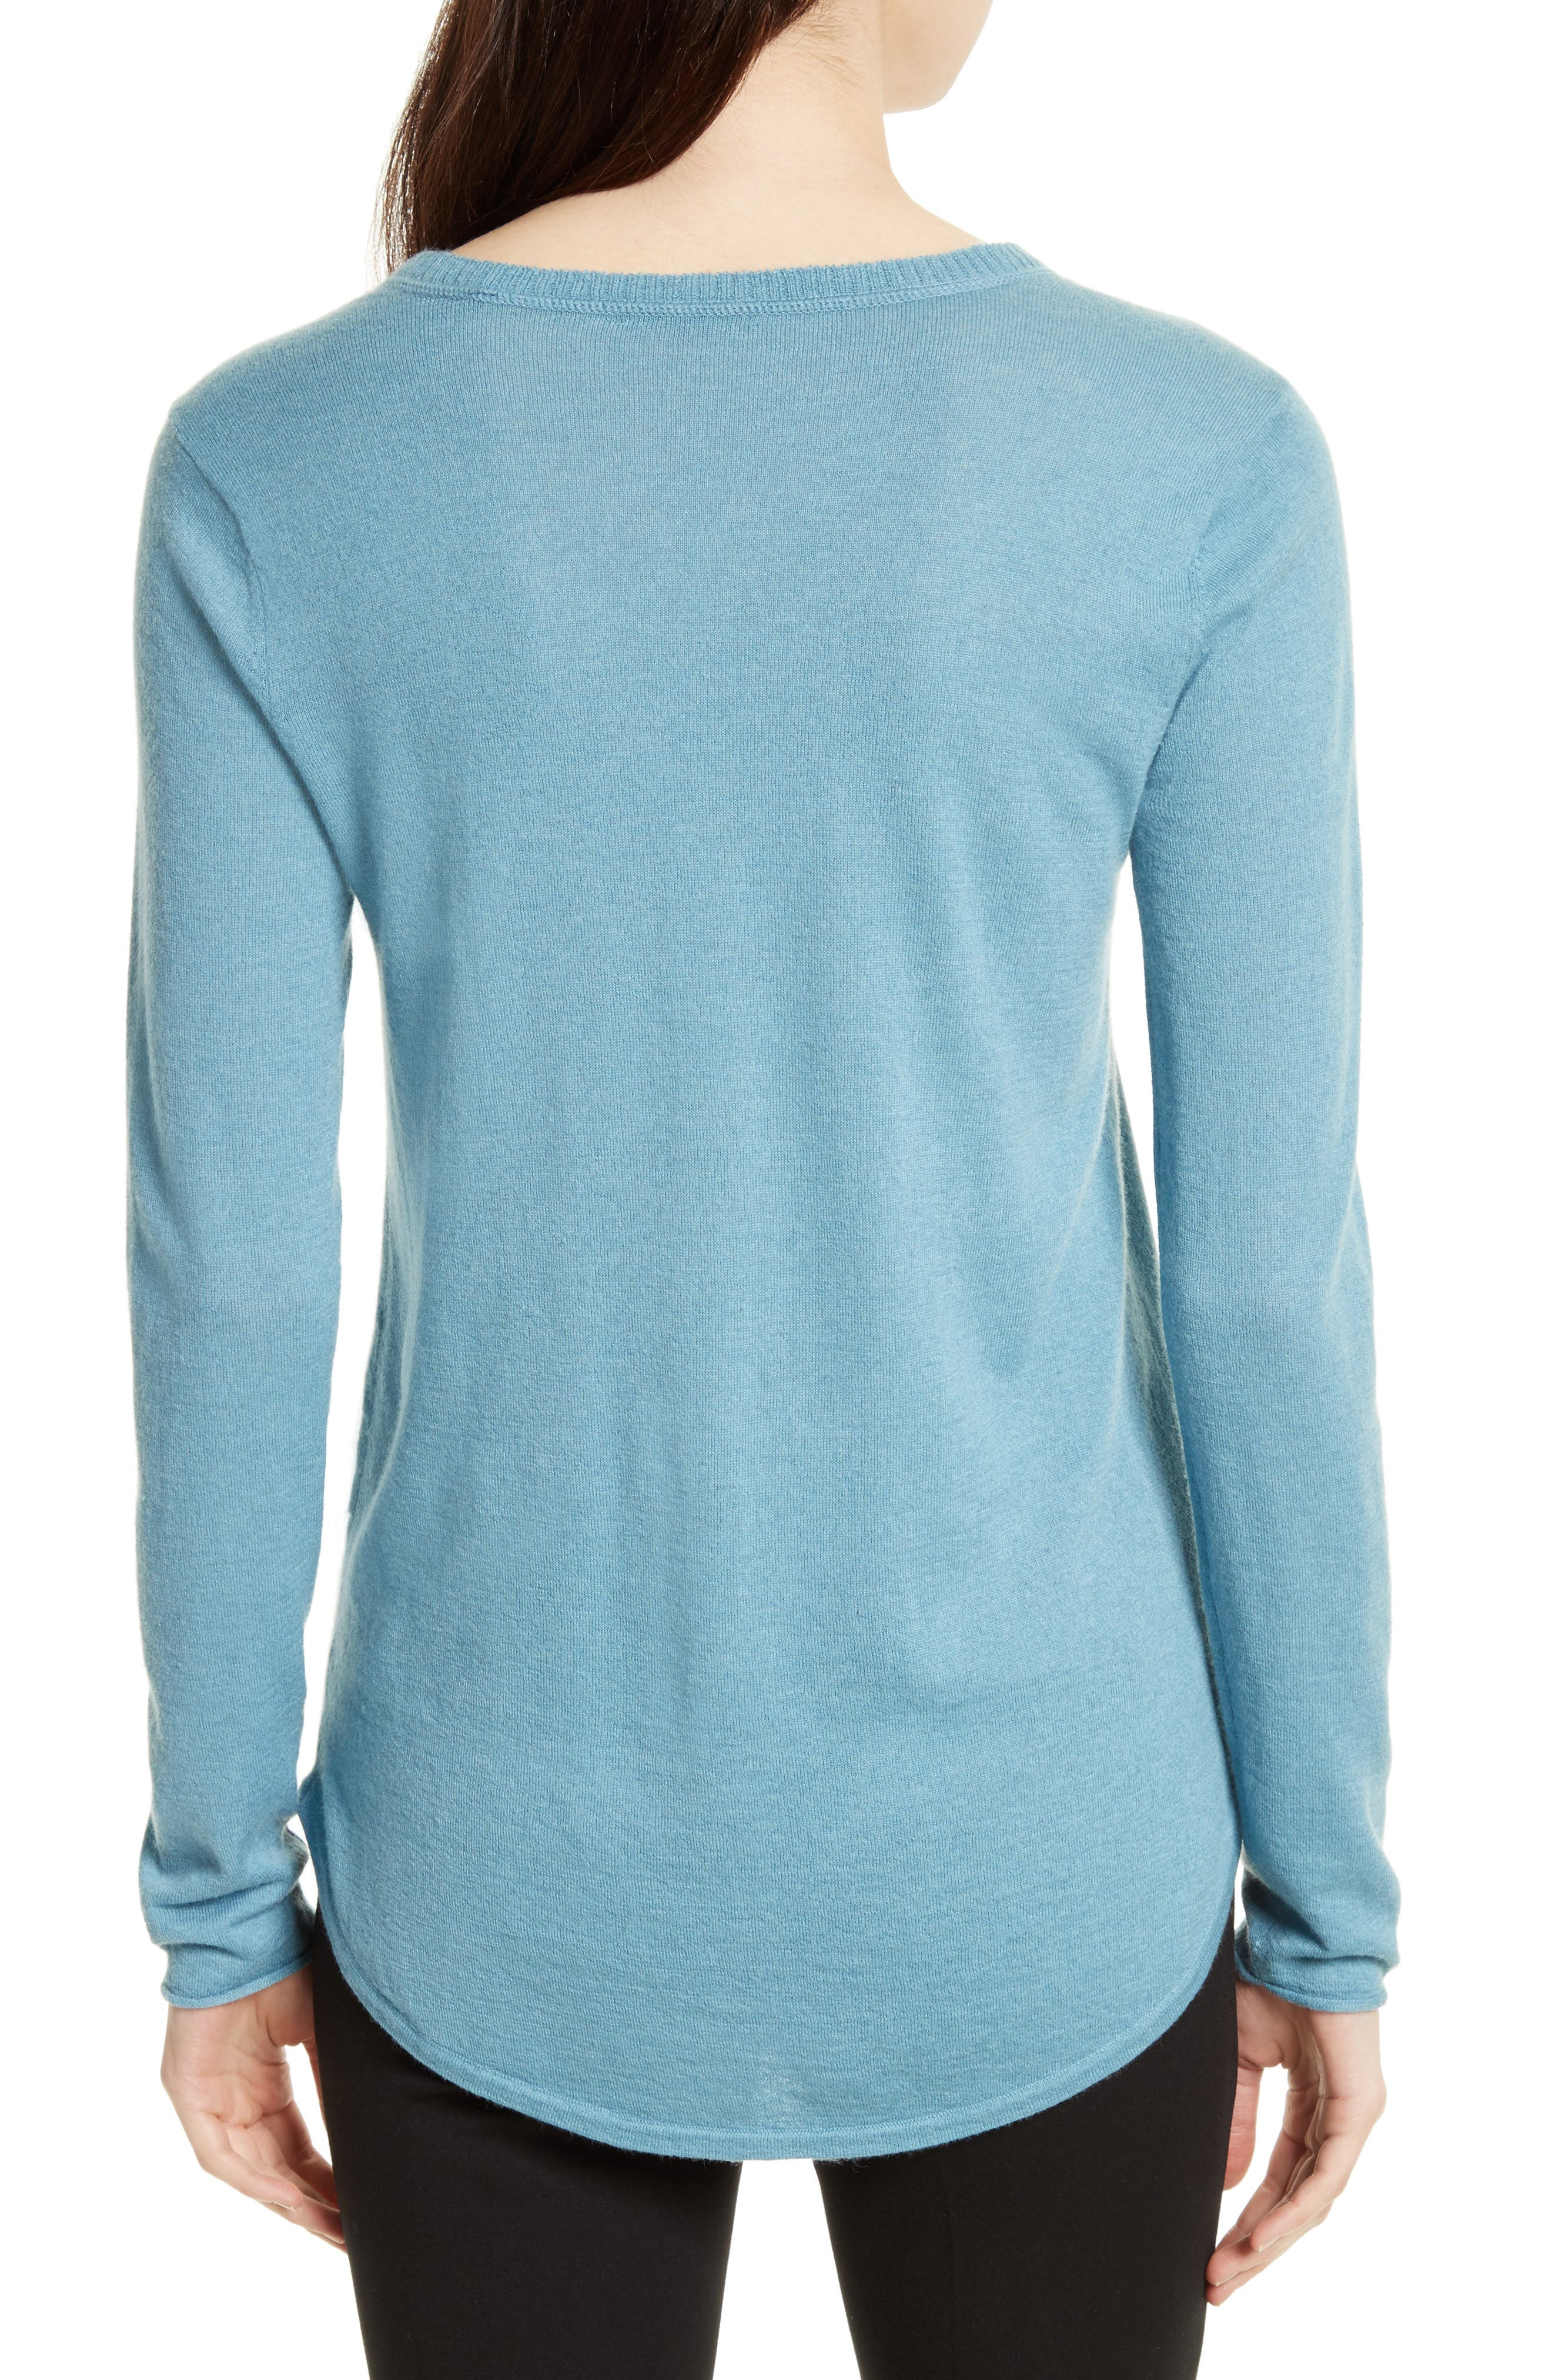 Raw Edge Cashmere Sweater,                             Alternate thumbnail 2, color,                             455